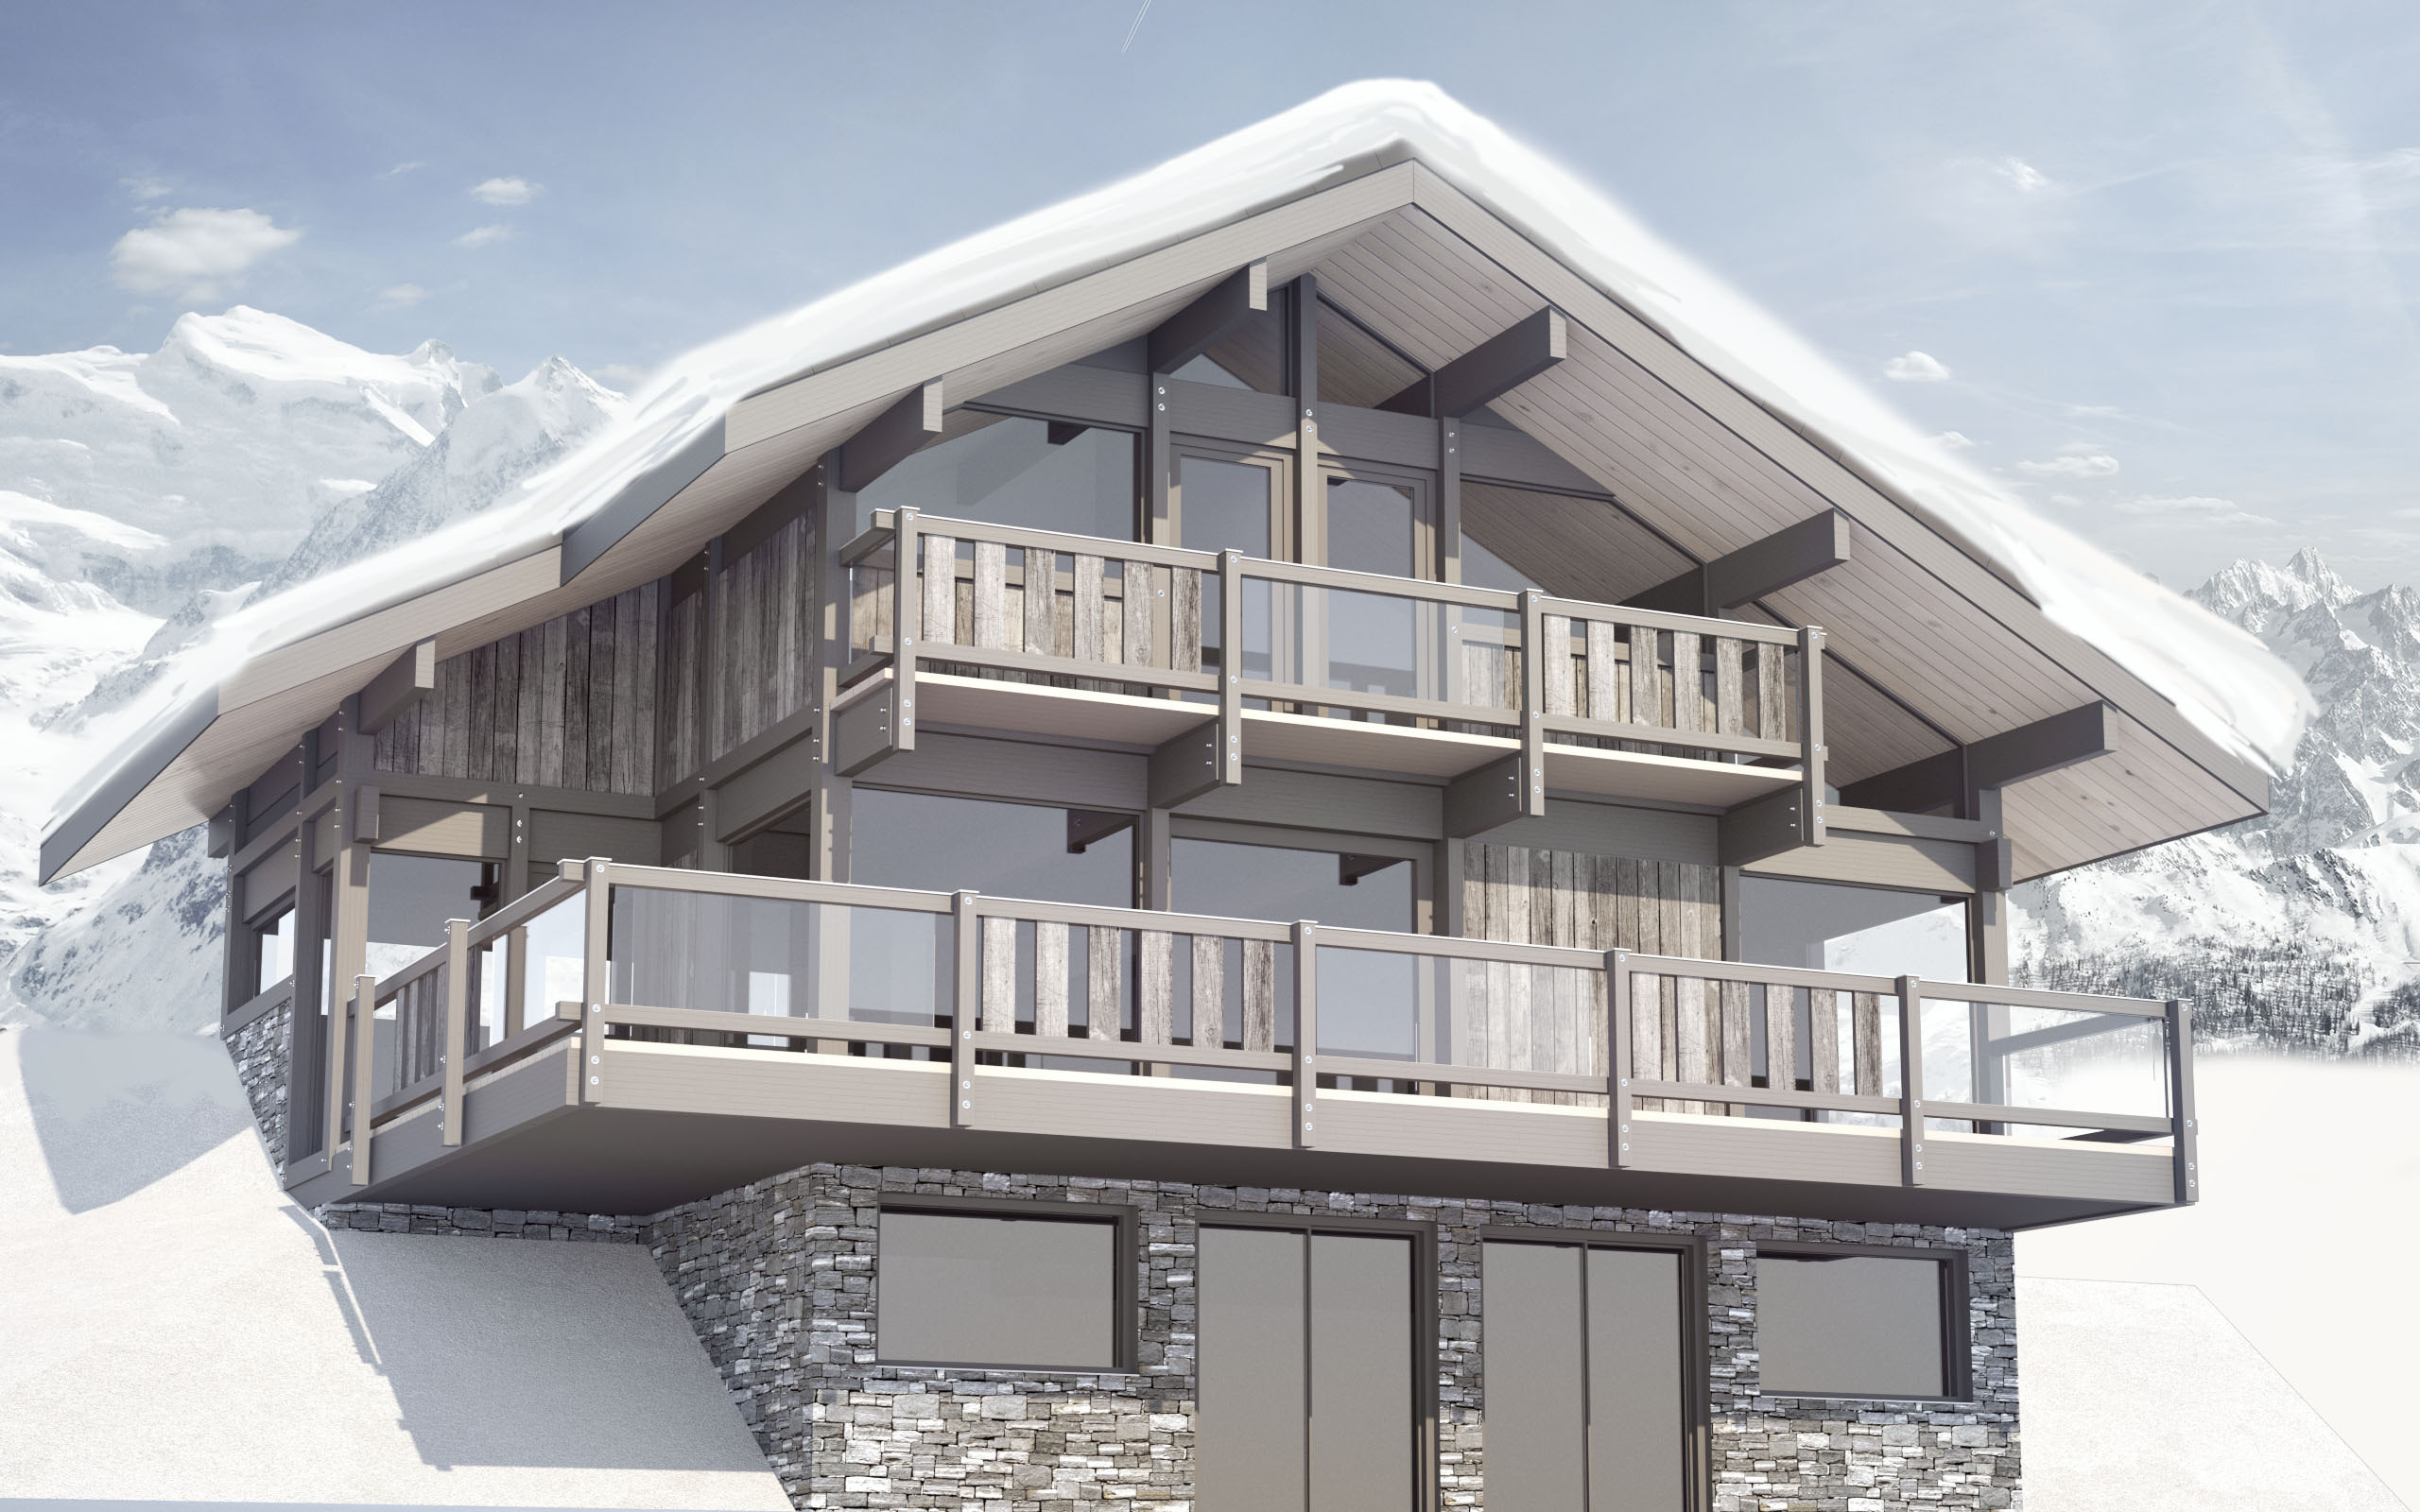 New build luxury chalets - St Gervais'